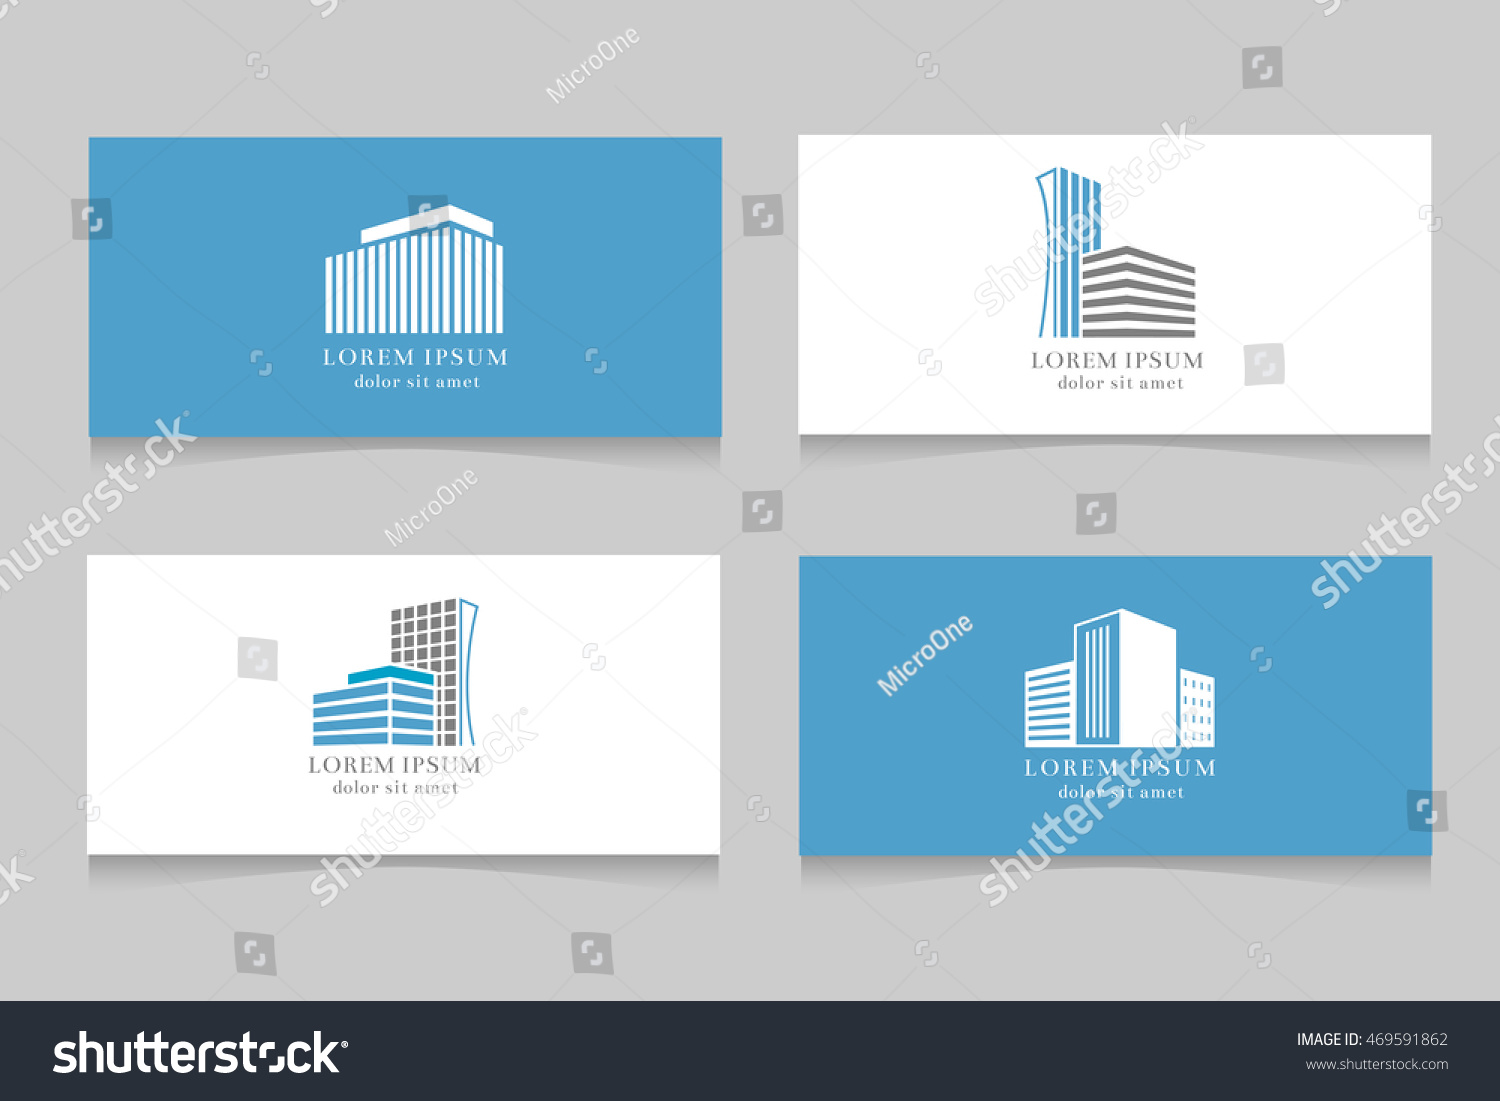 Real estate business card template cause and effect essay sample pdf real estate logo business card template stock vector 469591862 stock vector real estate logo with business magicingreecefo Choice Image